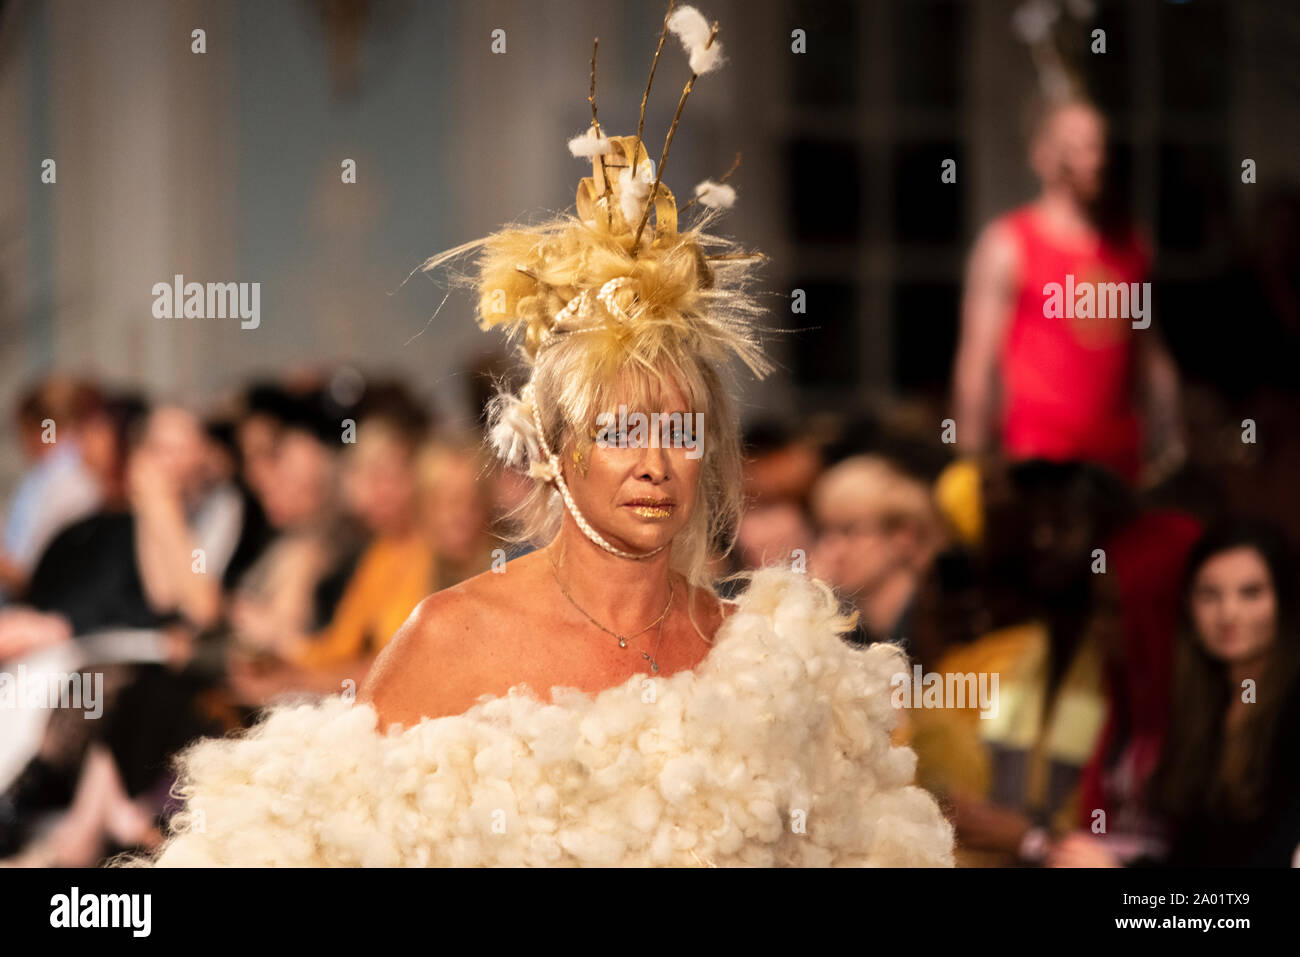 vin-and-omi-london-fashion-week-ss20-show-eco-friendly-clothing-designed-from-waste-and-weeds-from-highgrove-house-estate-older-model-jo-wood-2A01TX9.jpg